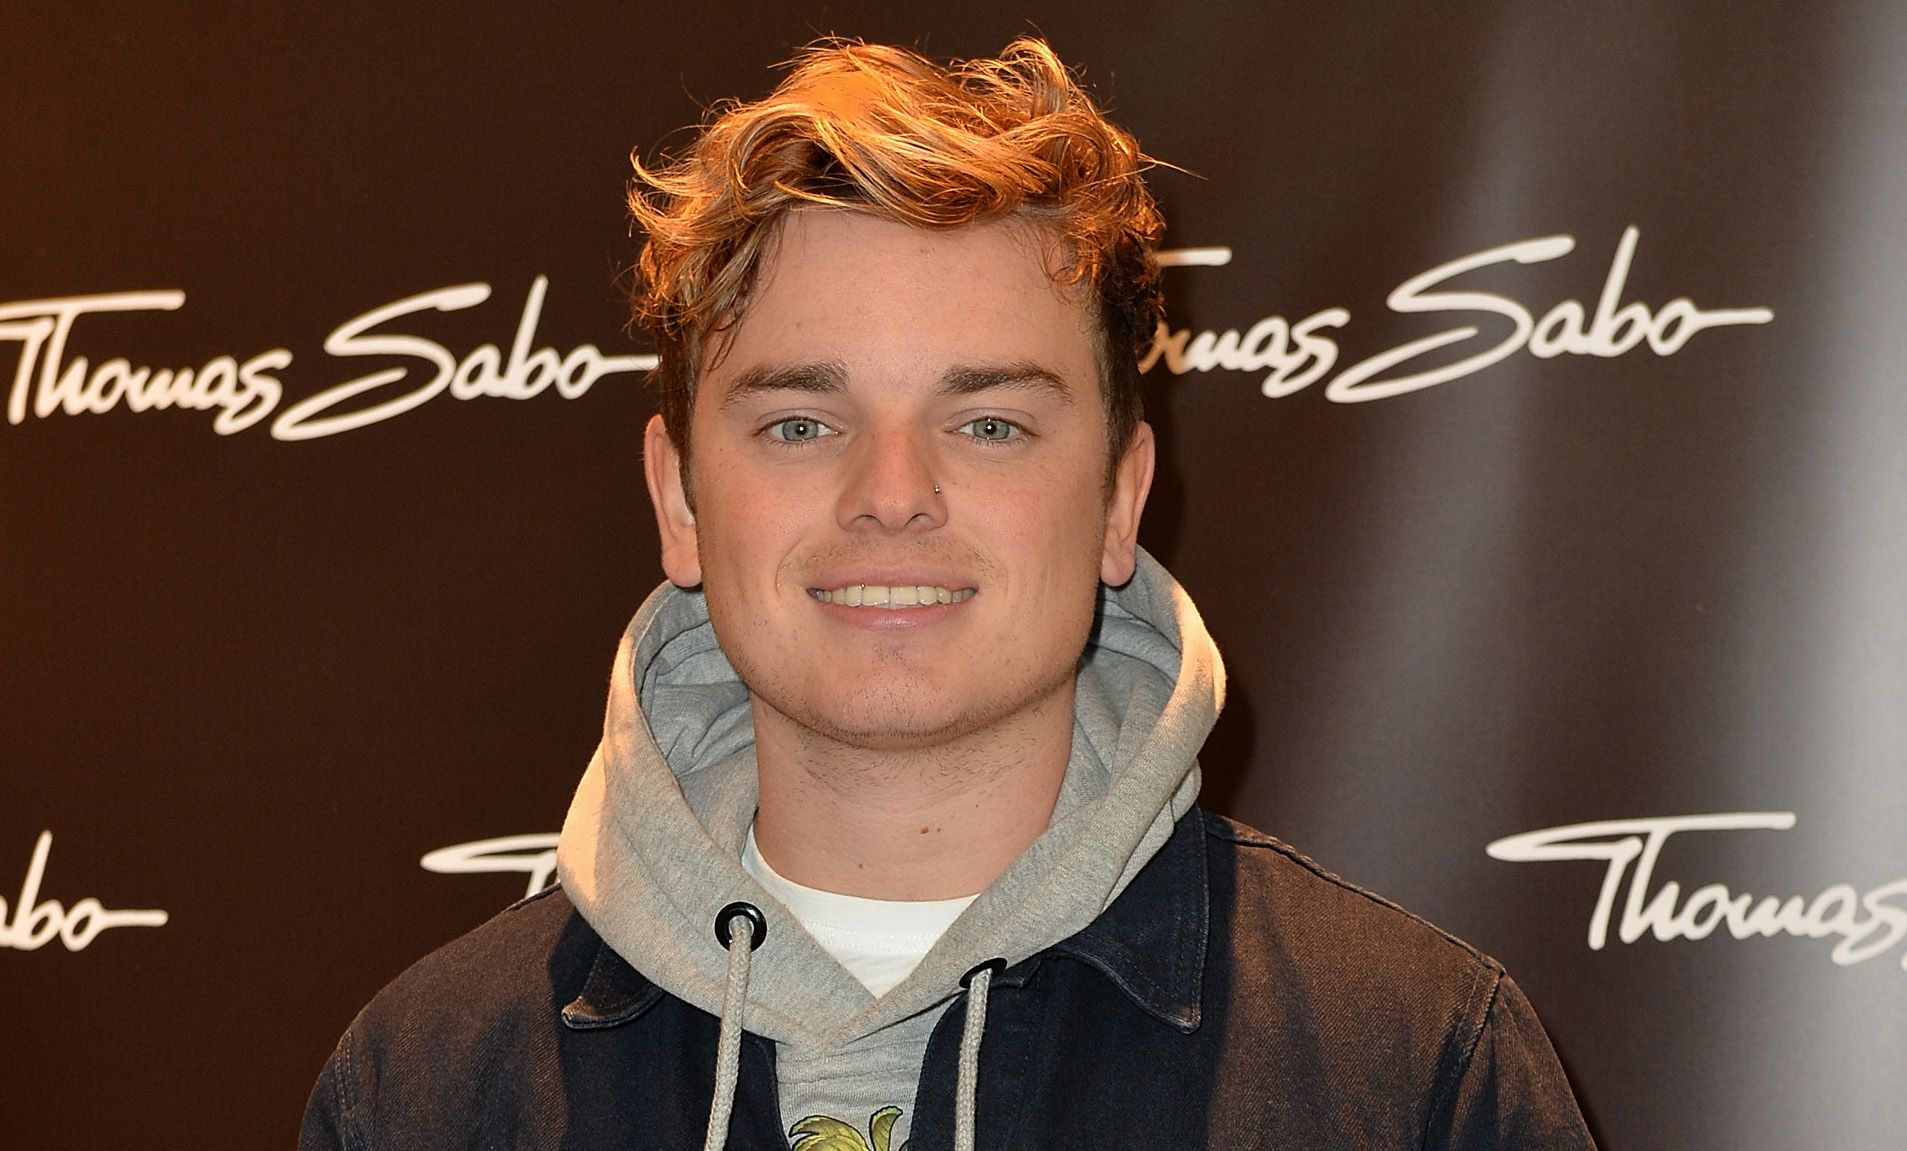 Jack Maynard, dating, girlfriend, wiki, net worth